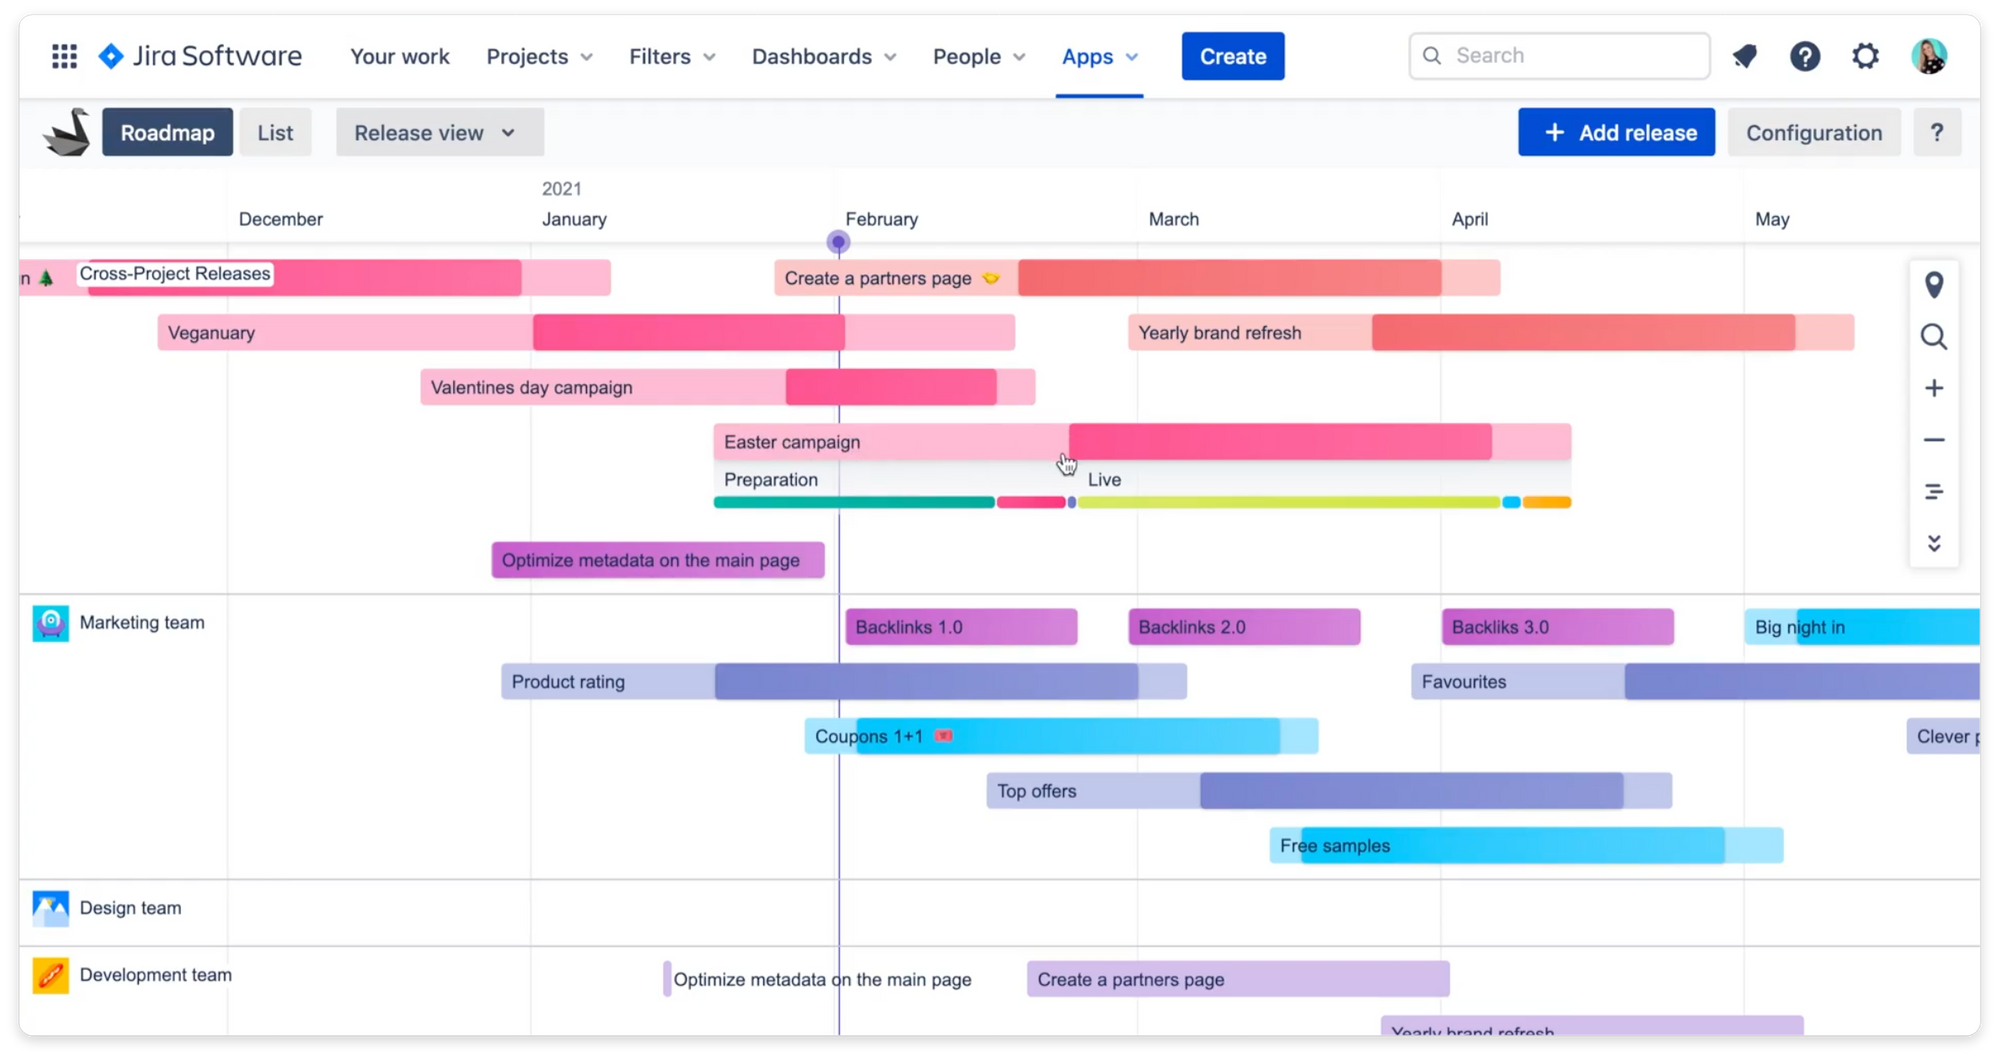 Comprehensive platform to manage work in Jira - Swanly